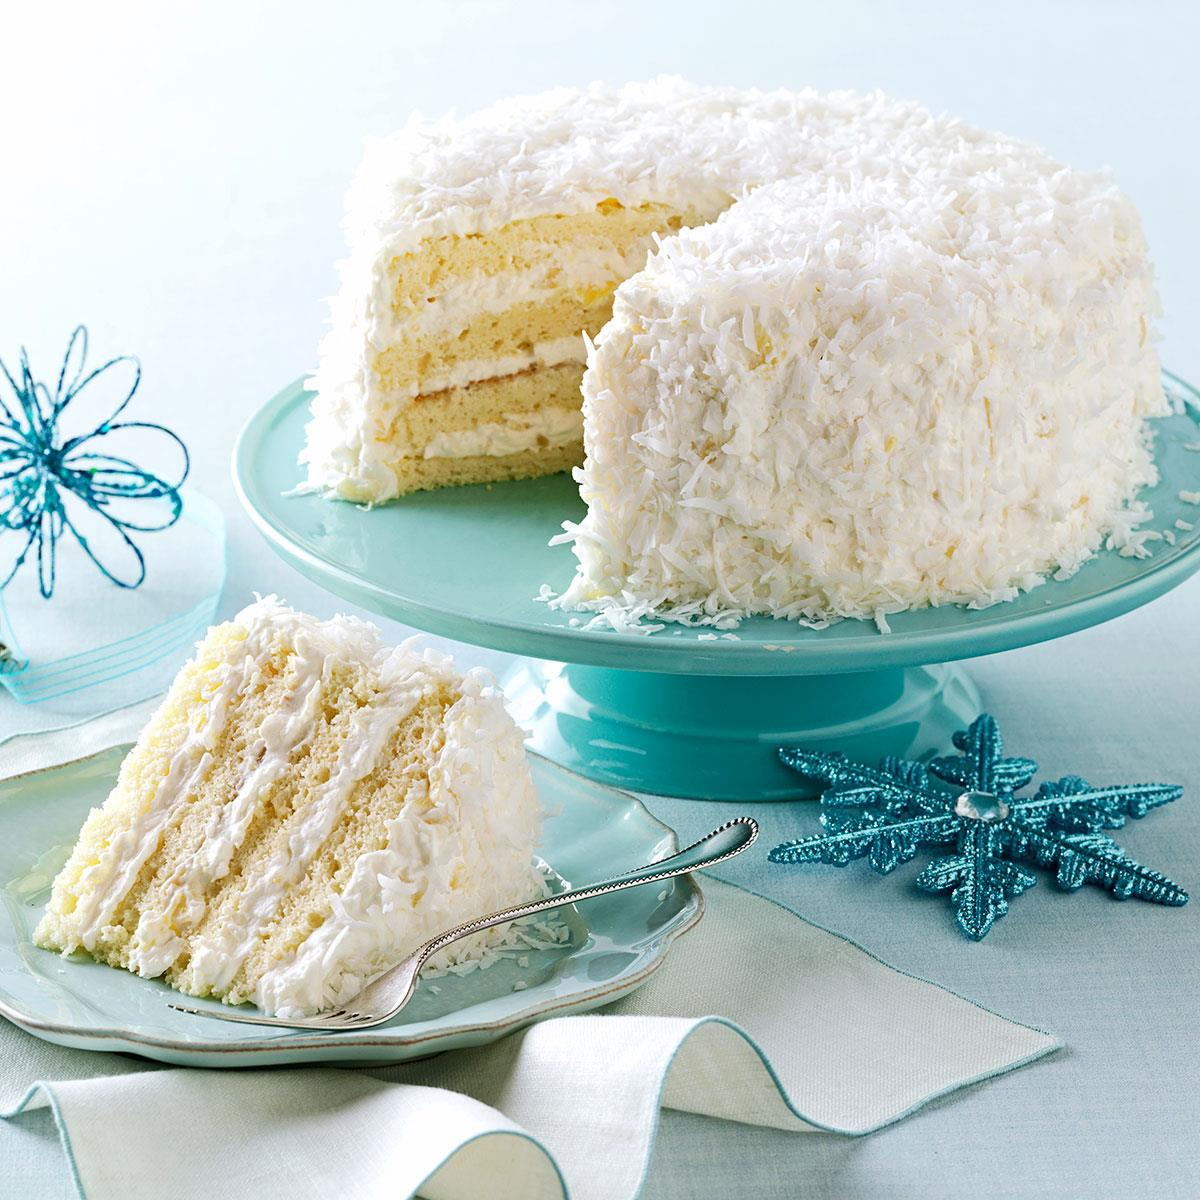 Pineapple Coconut Cake Recipe How To Make It Taste Of Home